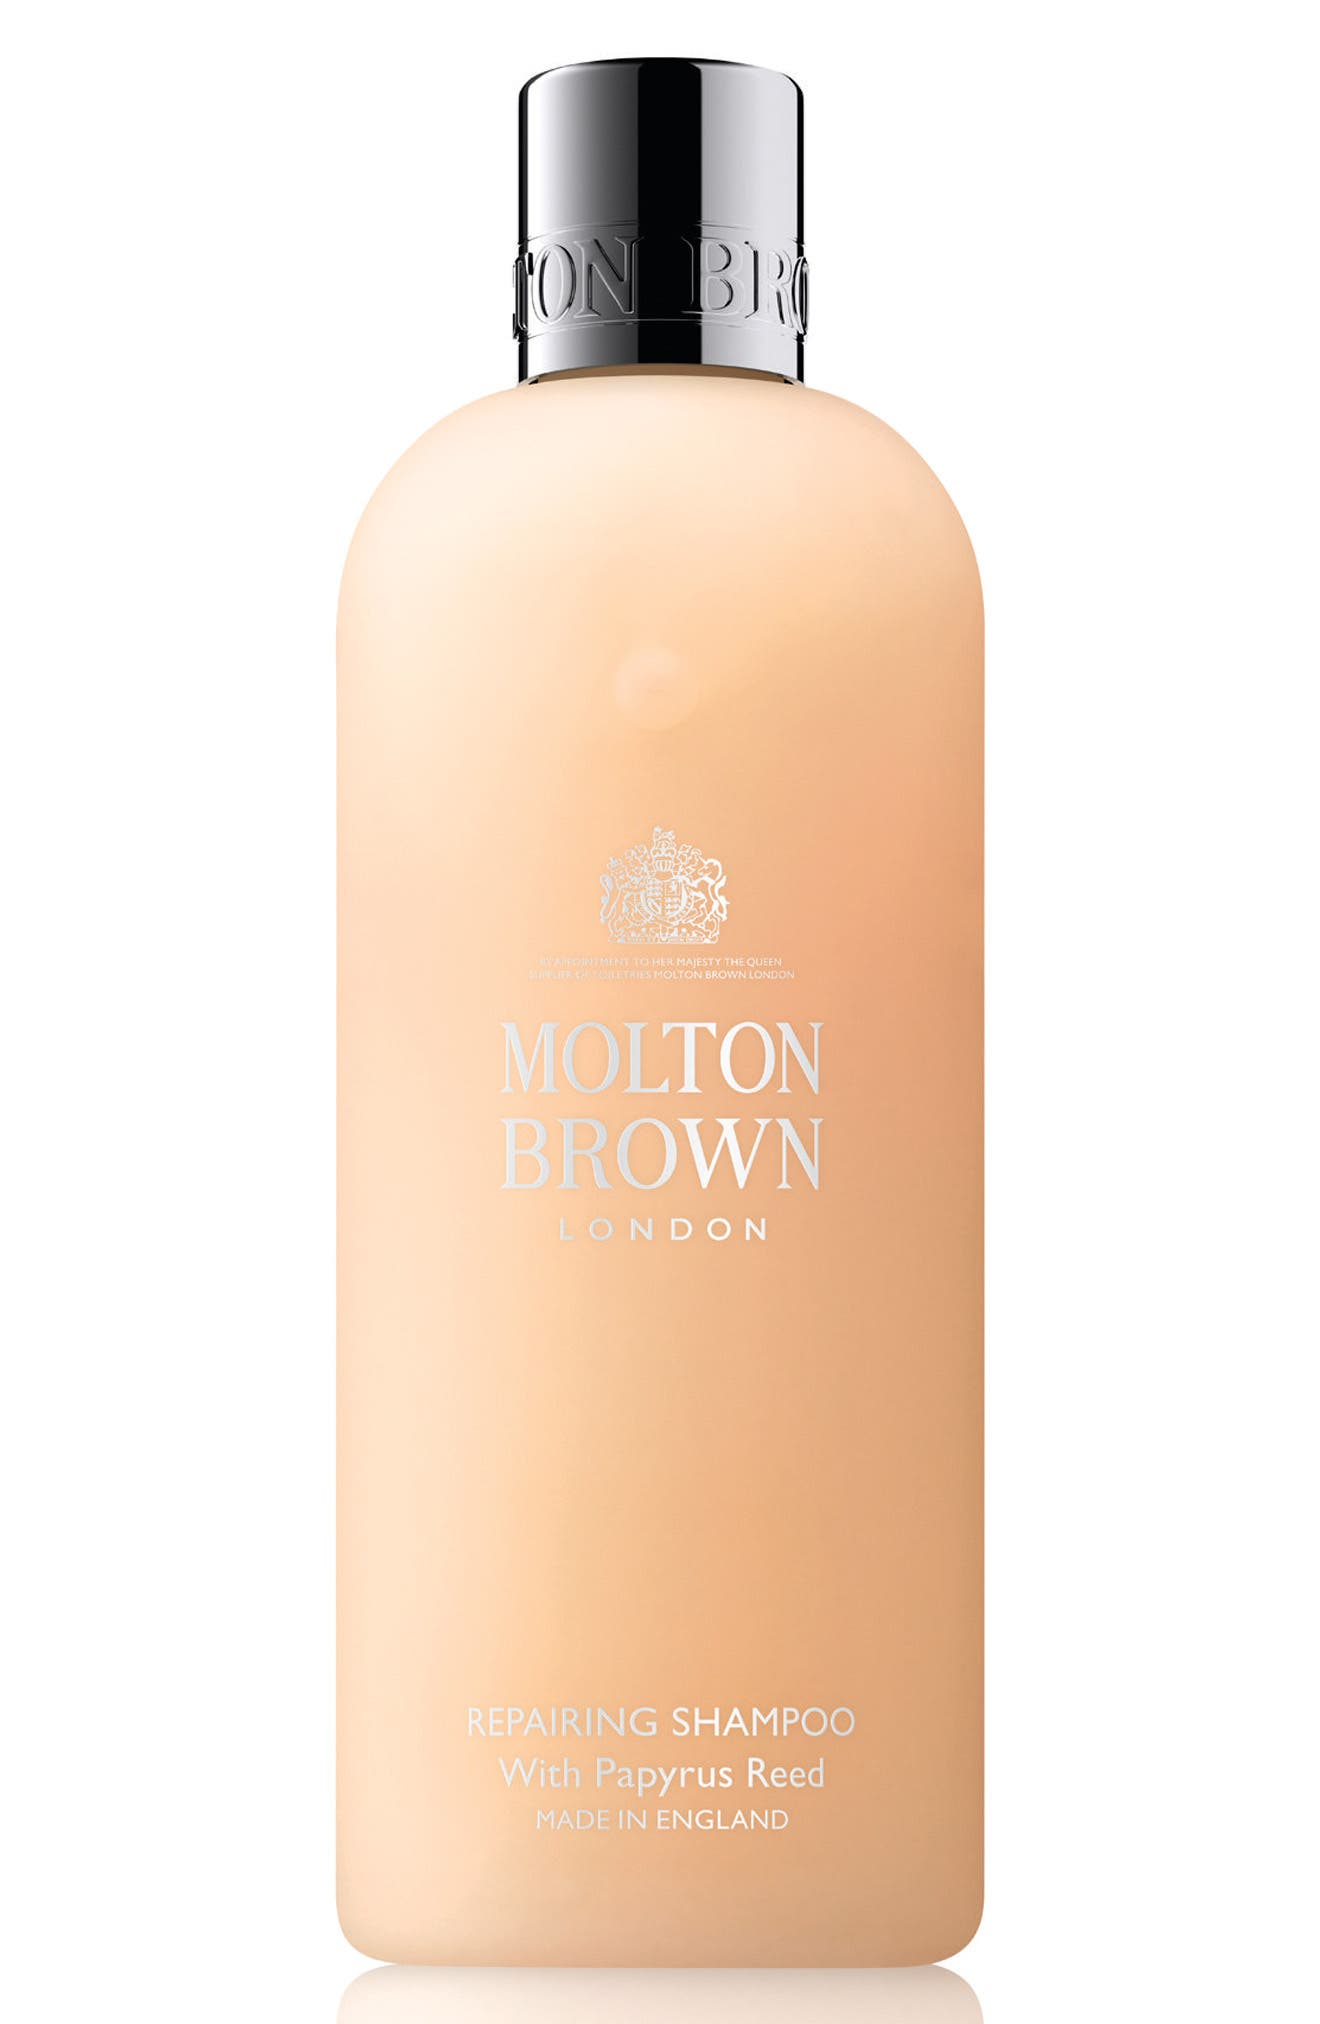 MOLTON BROWN London Repairing Shampoo with Papyrus Seed